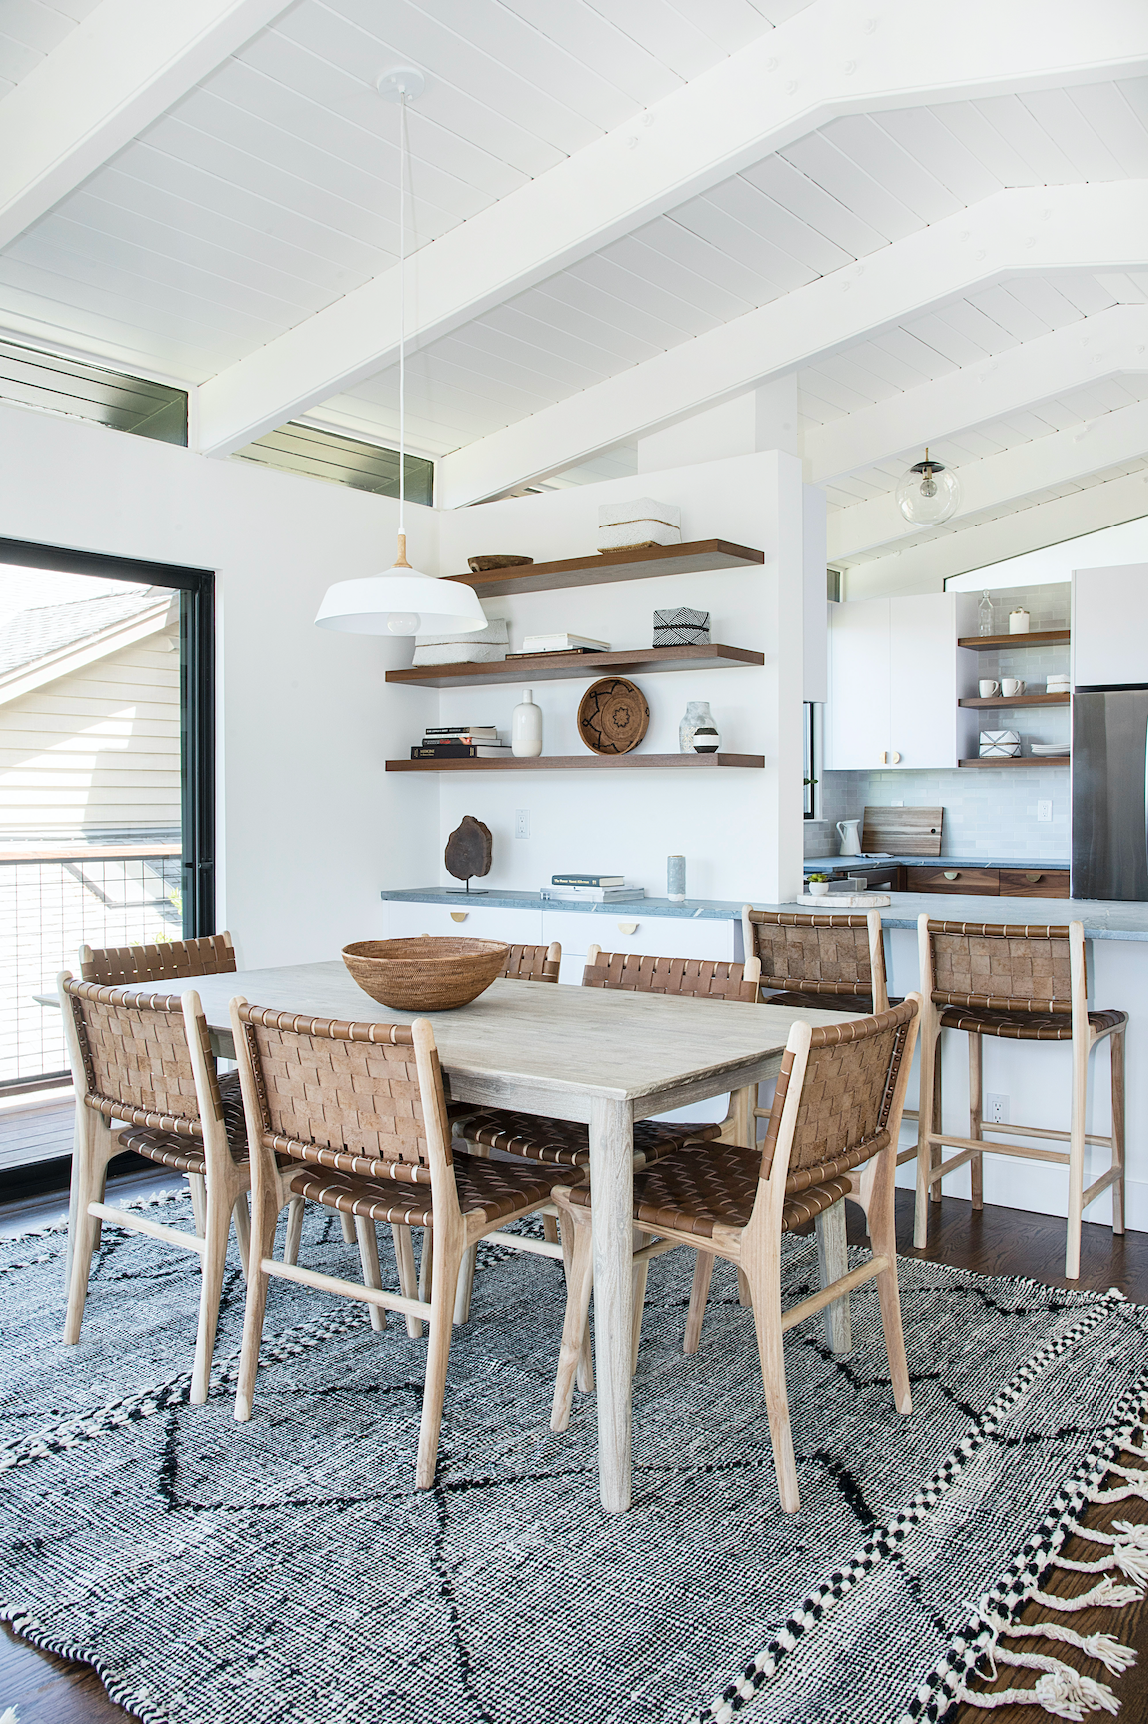 Dining room in Mill Valley Mid Century with woven leather strap dining chairs in beige with dark wood wall shelves featuring decor and slight view of kitchen area.